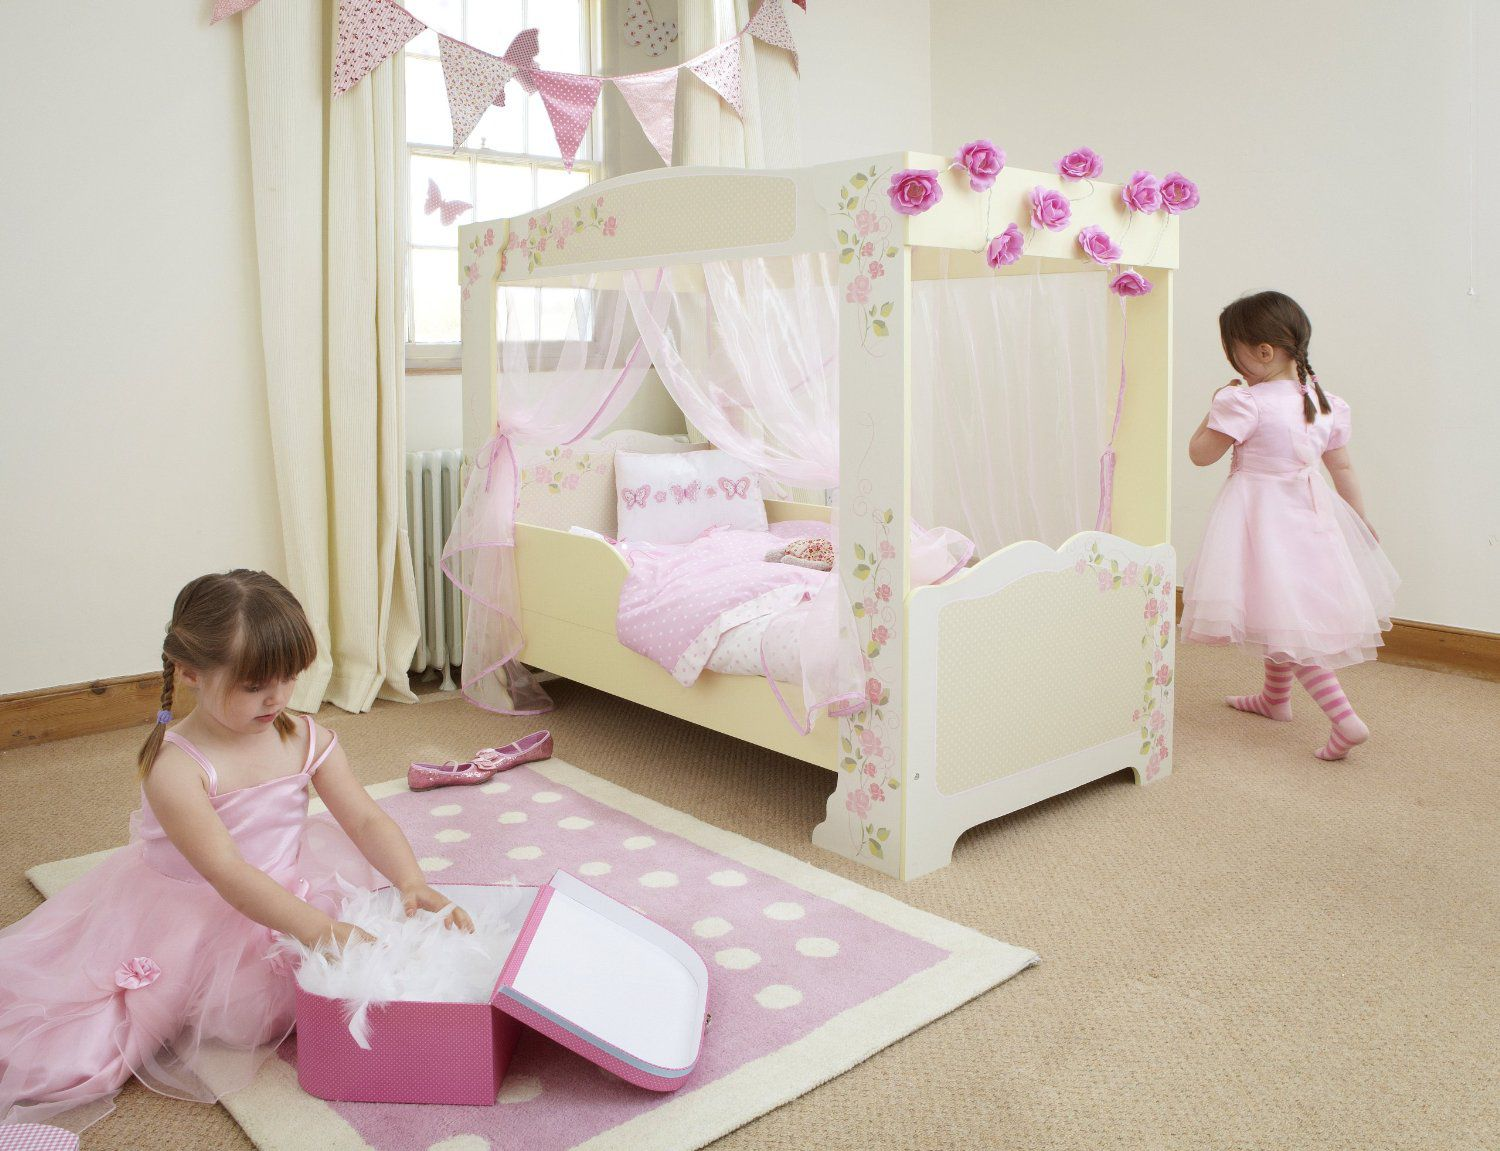 lit enfant fille baldaquin en bois rose et blanc avec. Black Bedroom Furniture Sets. Home Design Ideas